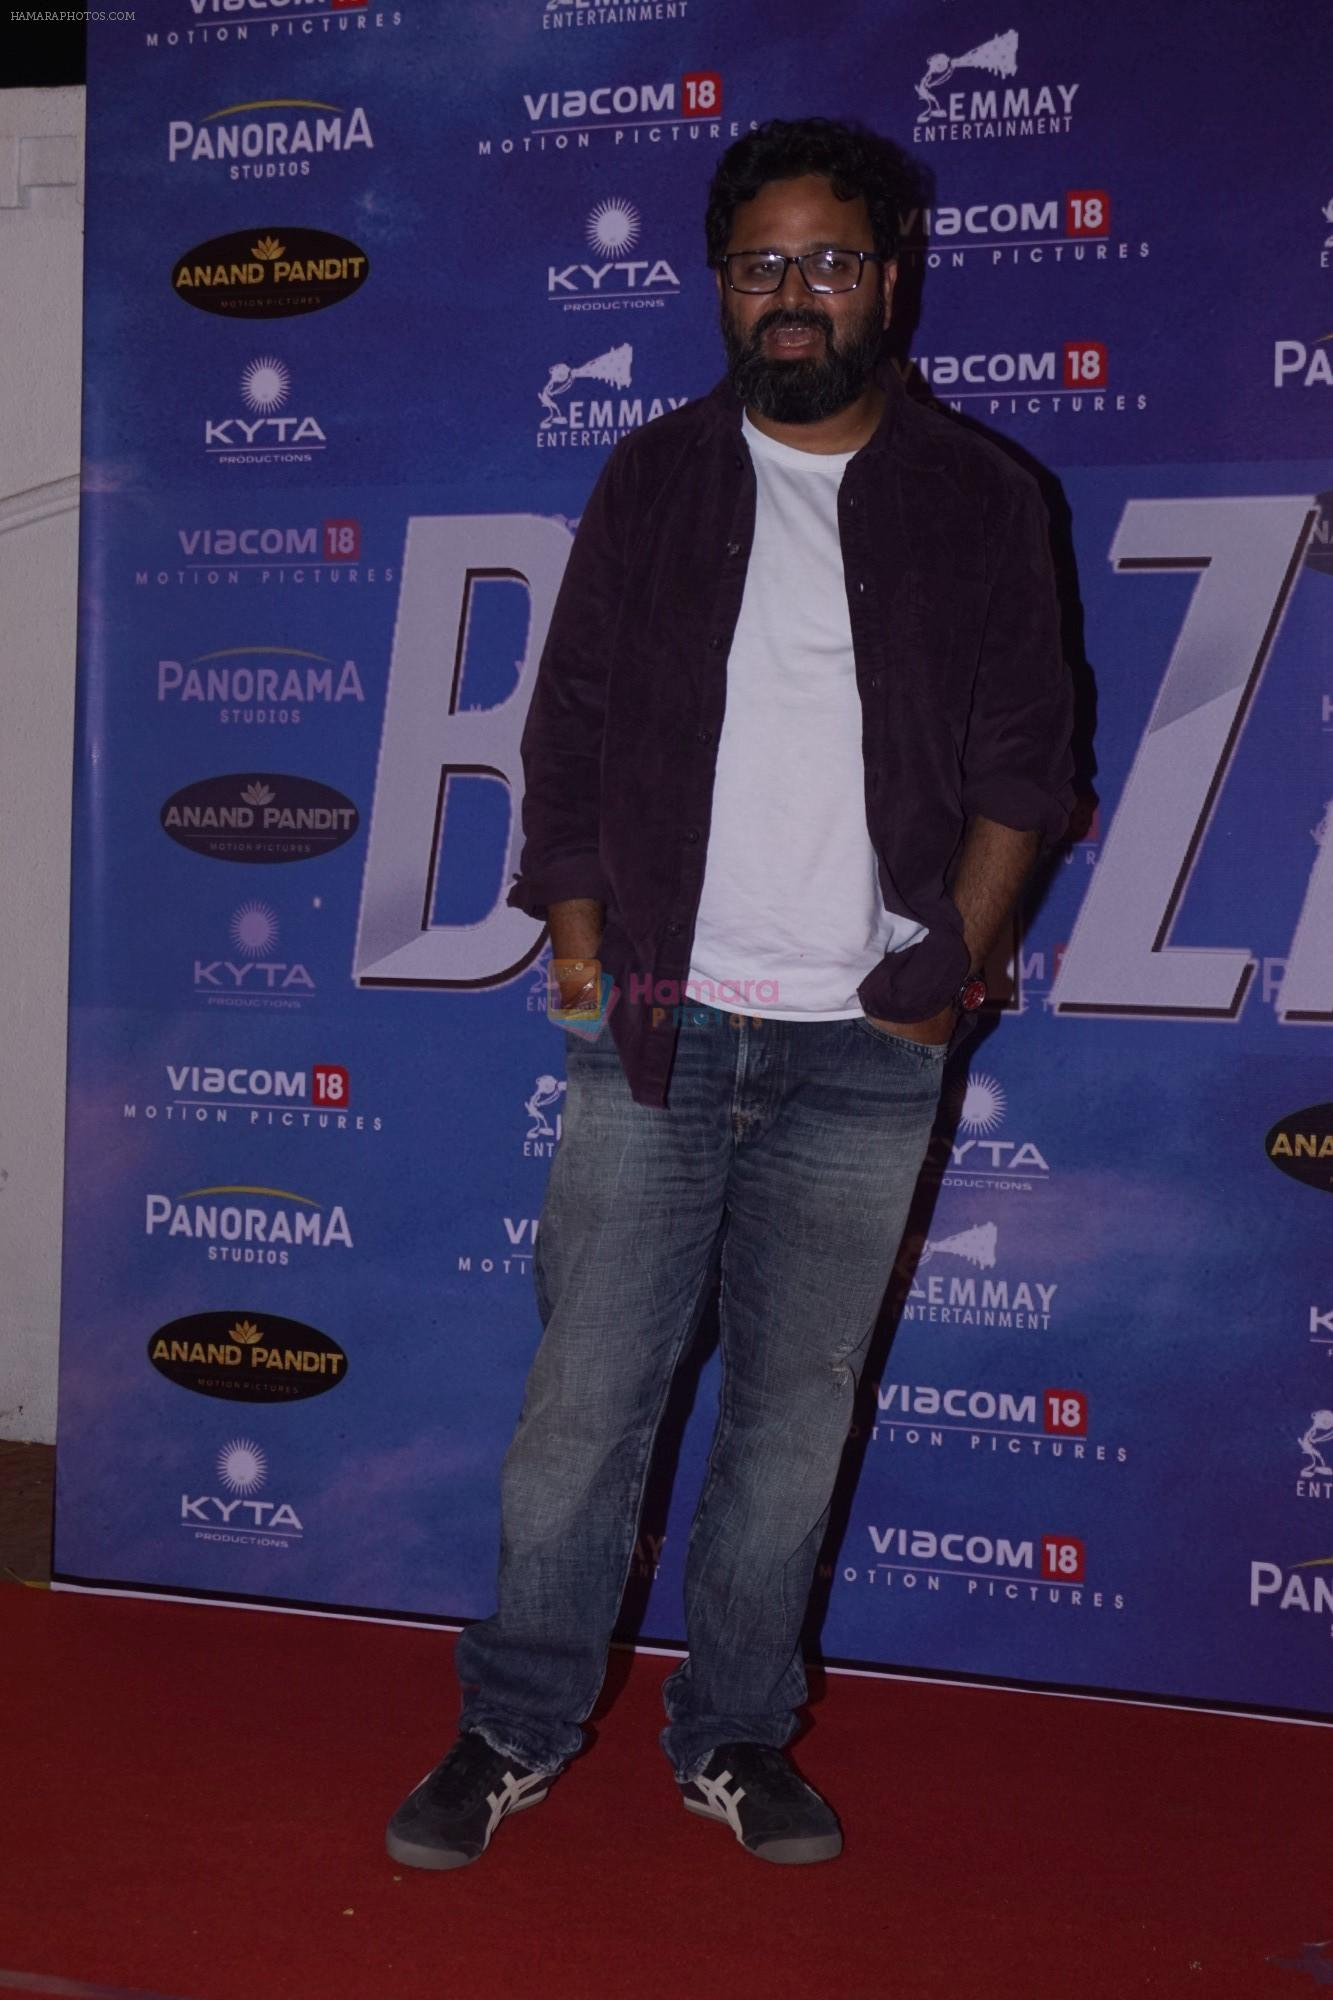 Nikkhil Advani at Anand pandit Hosted Success Party of Hindi Film Baazaar on 21st Nov 2018